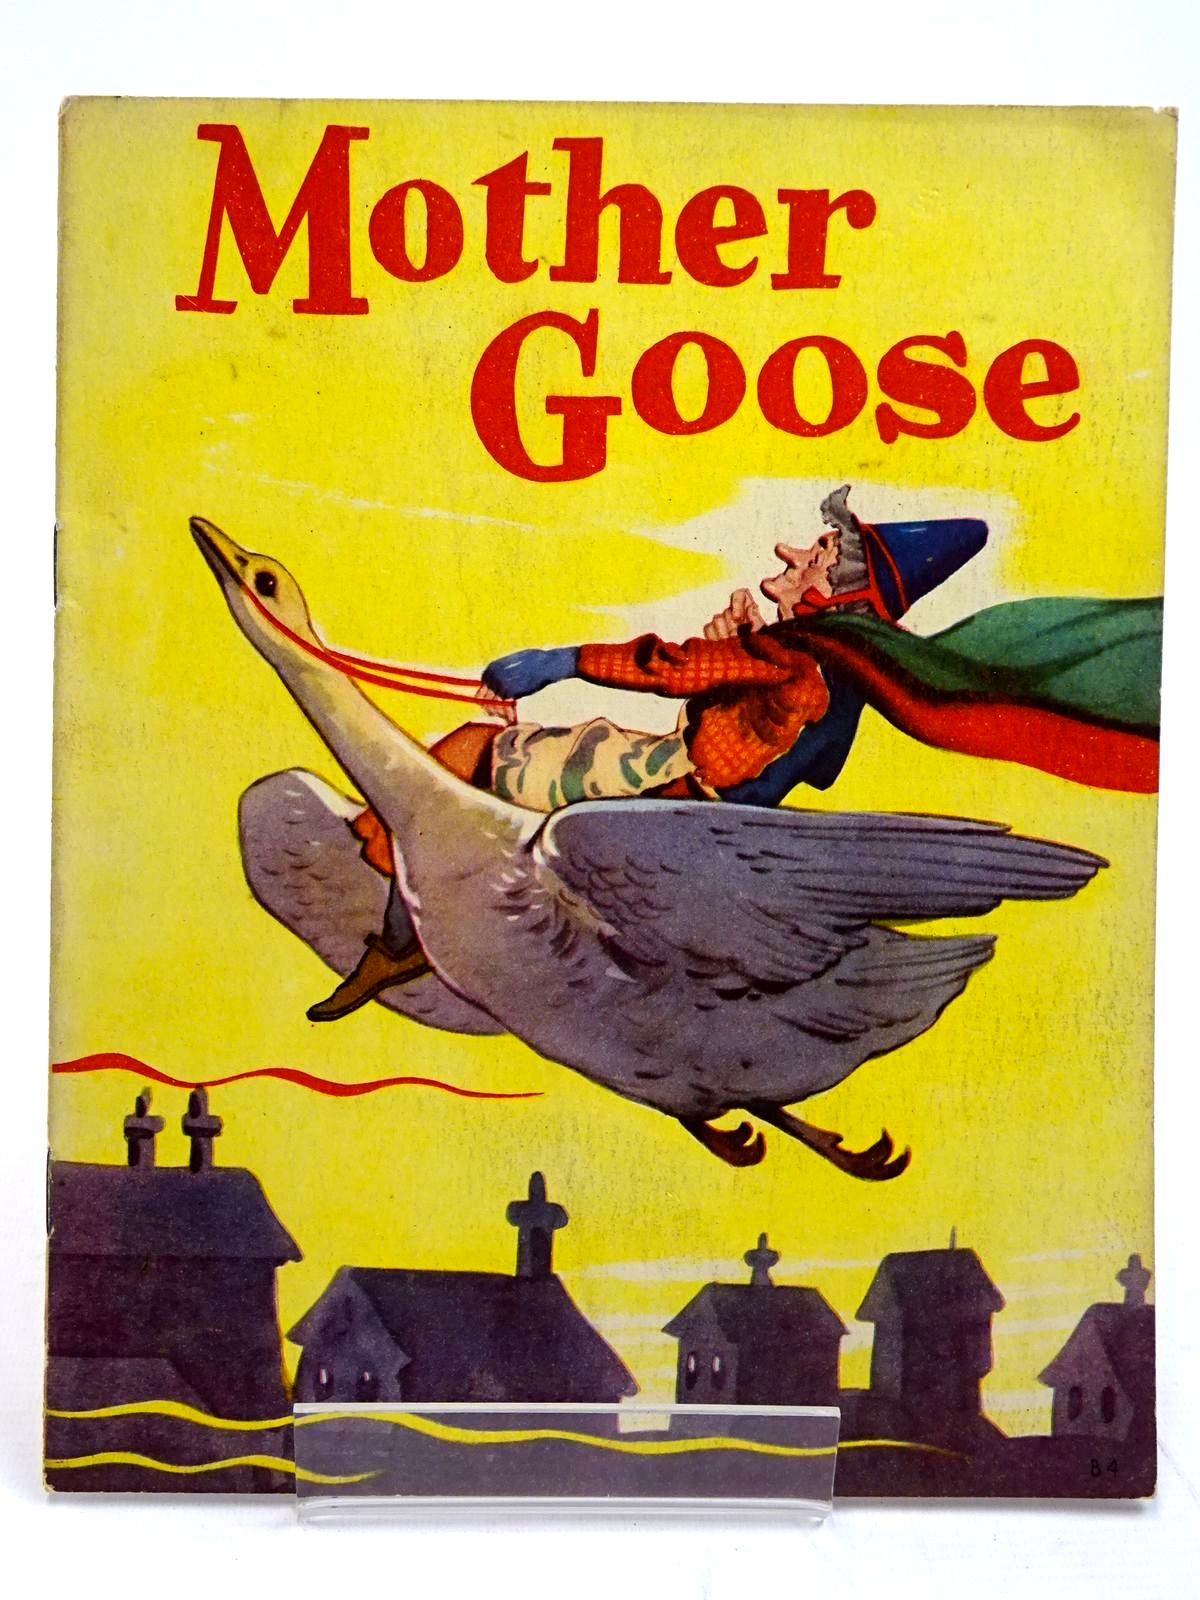 Photo of MOTHER GOOSE published by Wm. Collins Sons & Co. Ltd. (STOCK CODE: 2131569)  for sale by Stella & Rose's Books